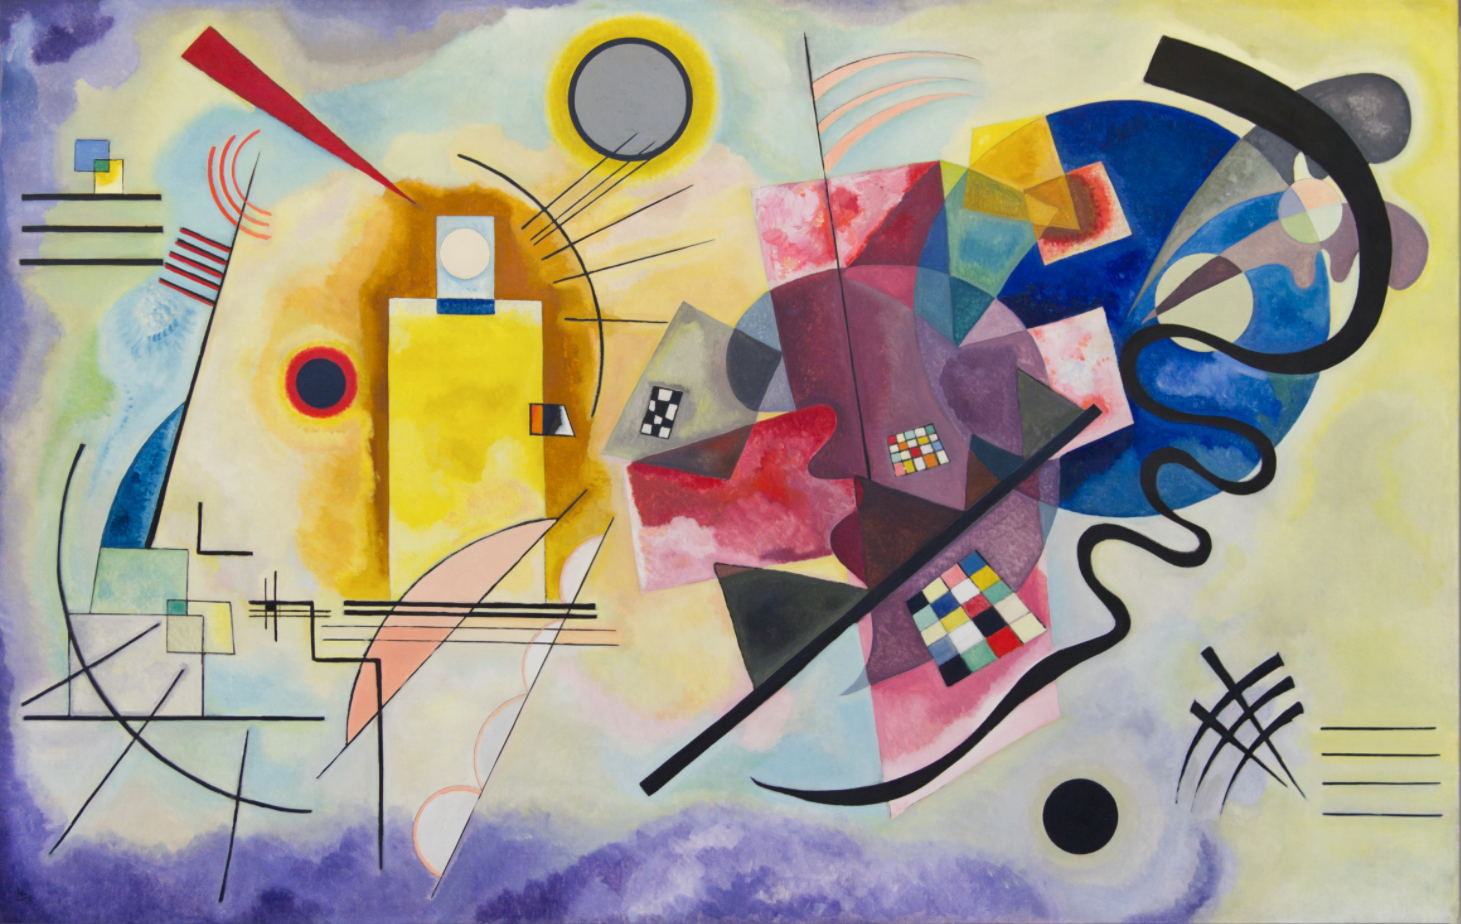 a picture of the 1925 painting 'Yellow, Red, Blue' by Kandinsky